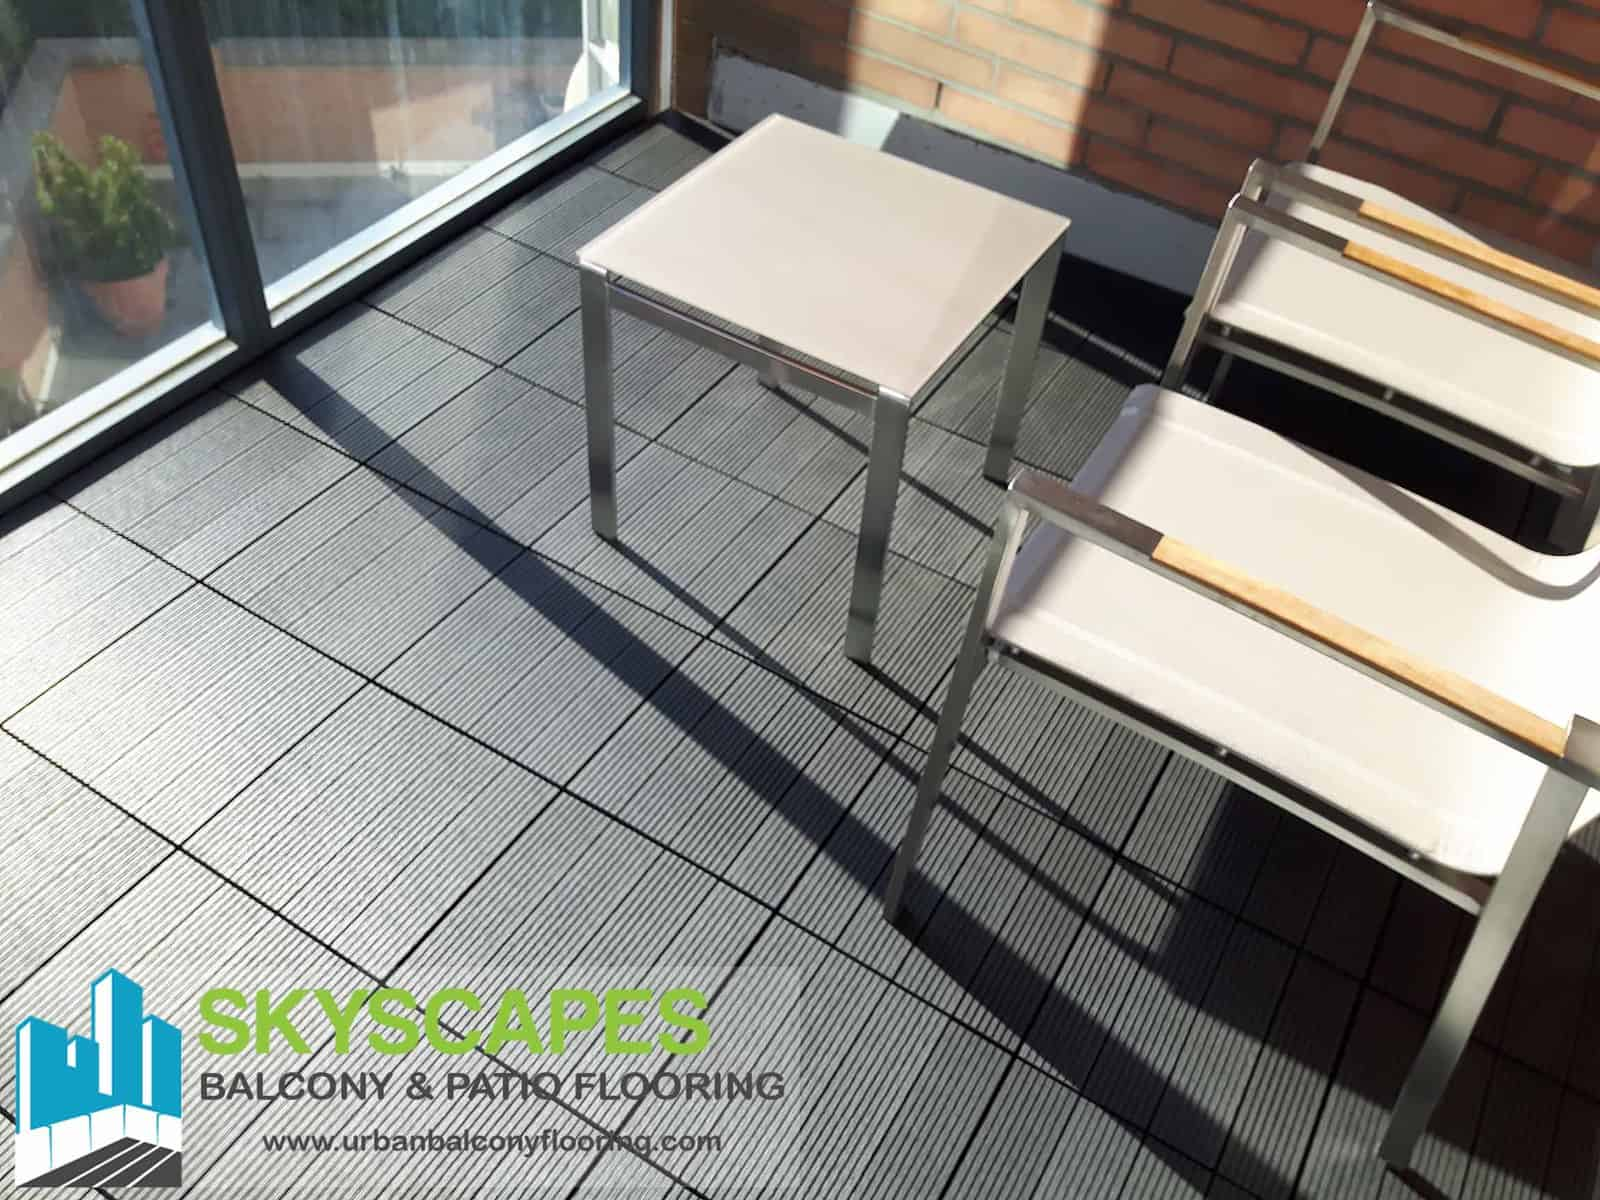 Charcoal, 4-slat, ridged WPC Tile seen on balcony floor with nice modern furniture. Measures 1 by 1 feet. Skyscapes green and blue logo at bottom-left of image.